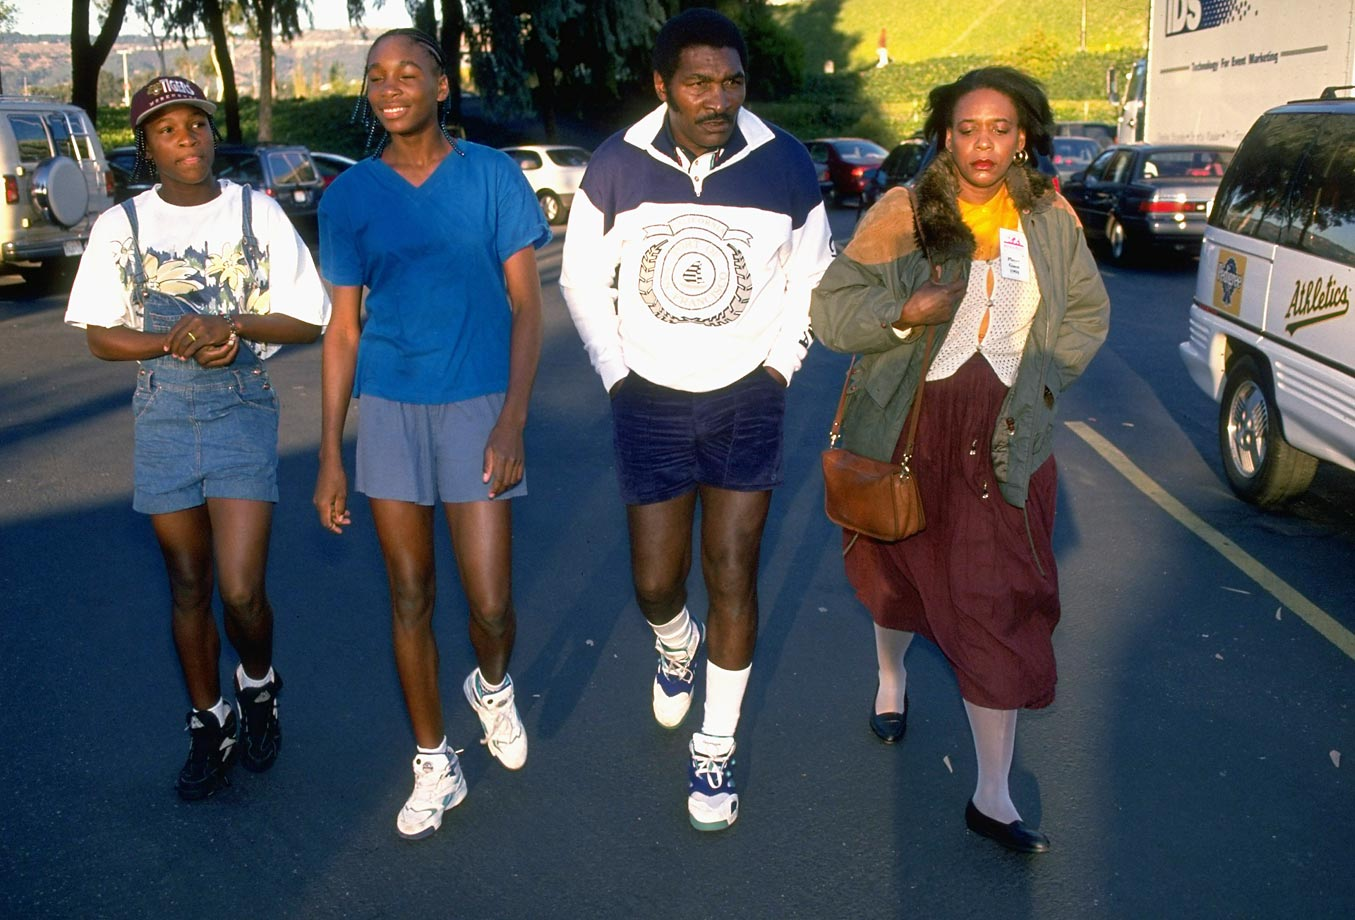 Serena was on hand for Venus's pro debut at Oakland-Alameda County Coliseum Arena in October 1994. The family, including mom Oracene, are pictured here before that event.